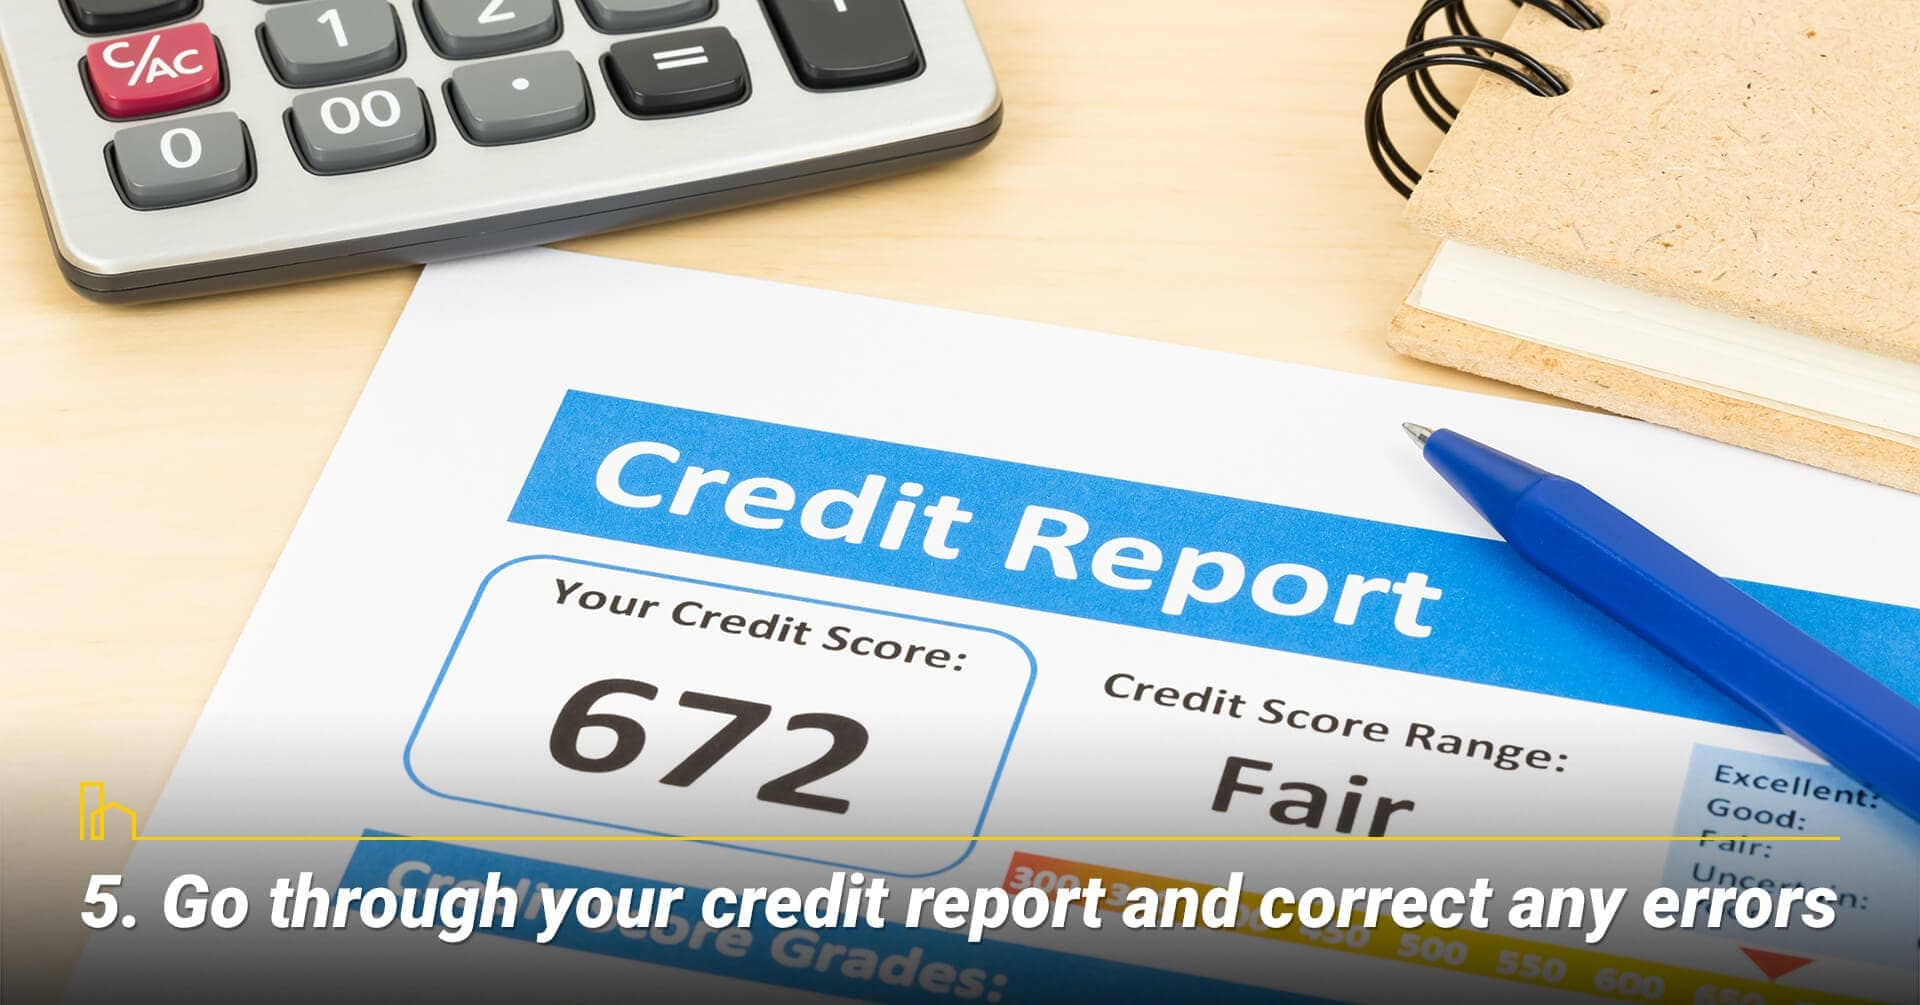 Go through your credit report and correct any errors, clean up errors in your credit report